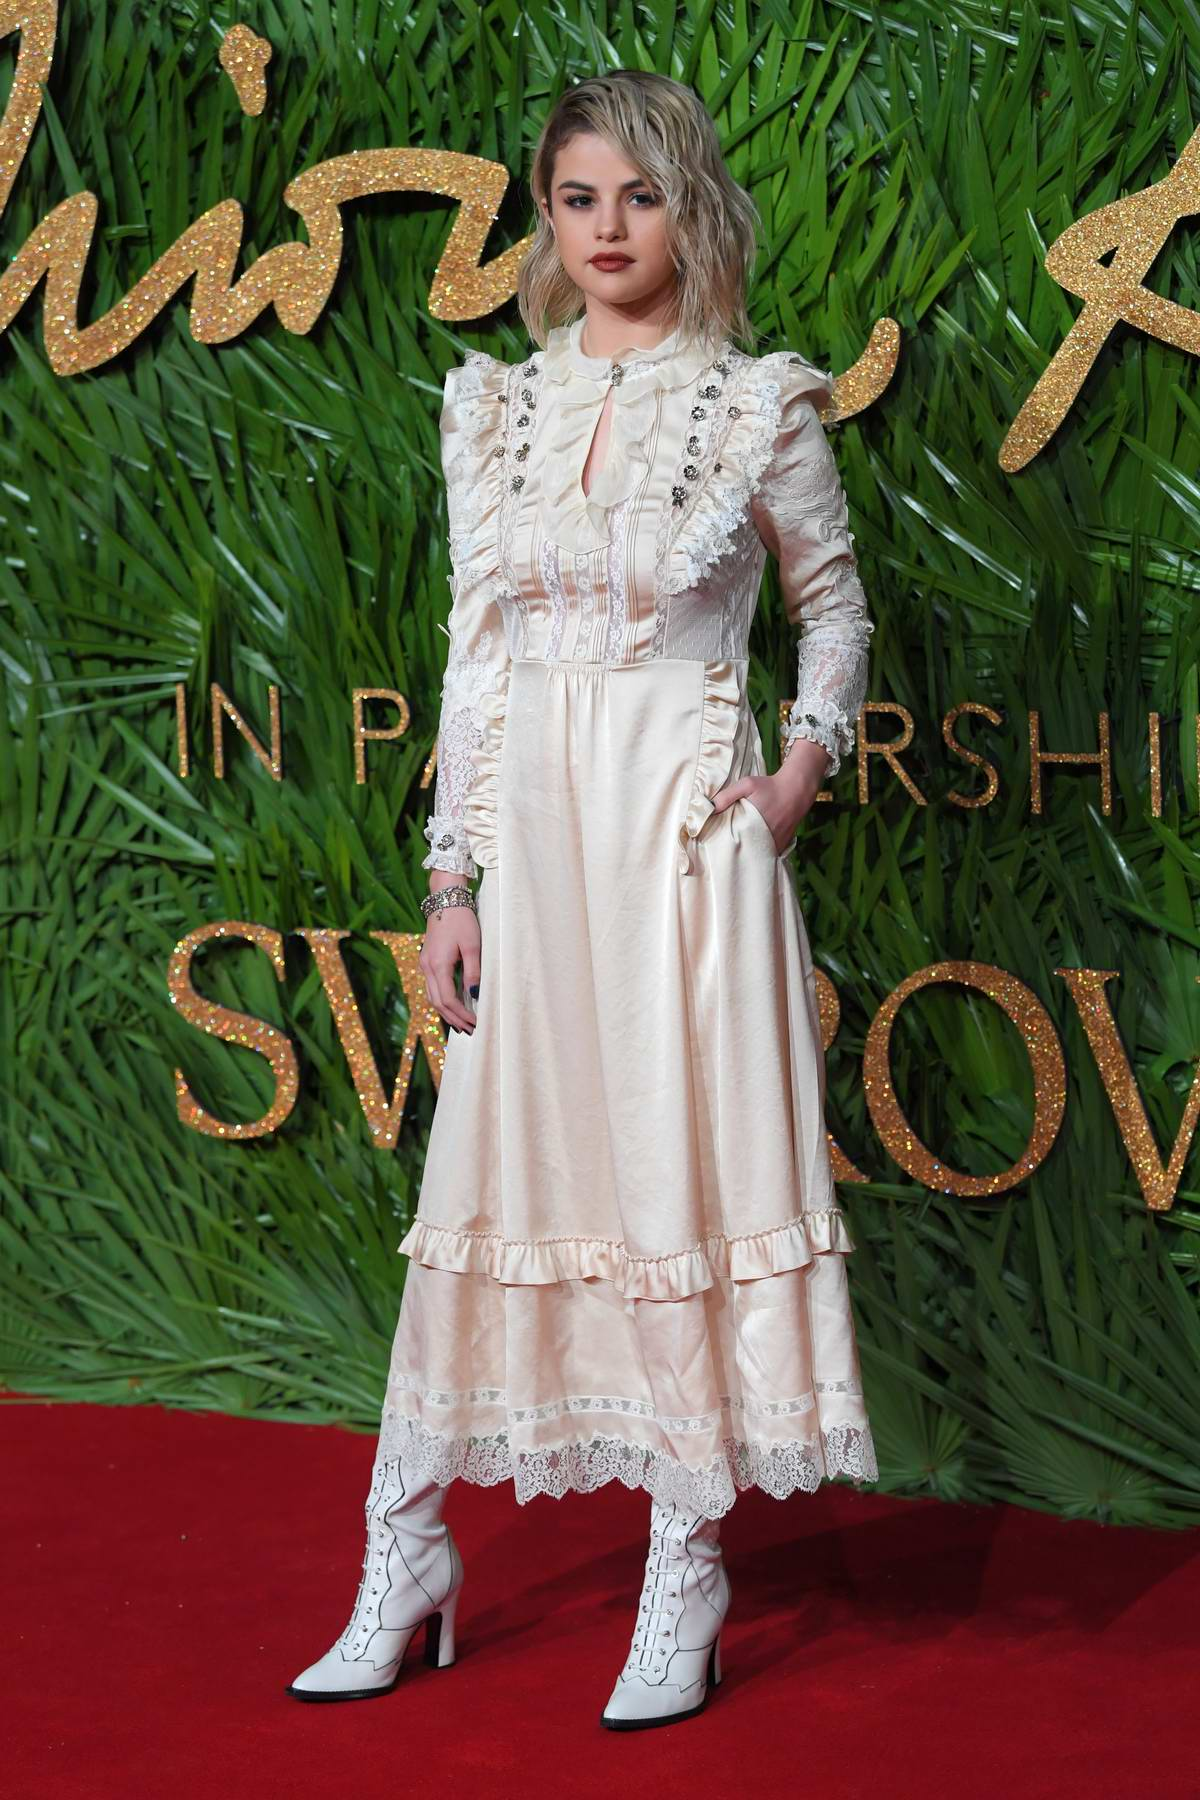 Selena Gomez attends The British Fashion Awards 2017 in partnership with Swarovski held at the Royal Albert Hall in London